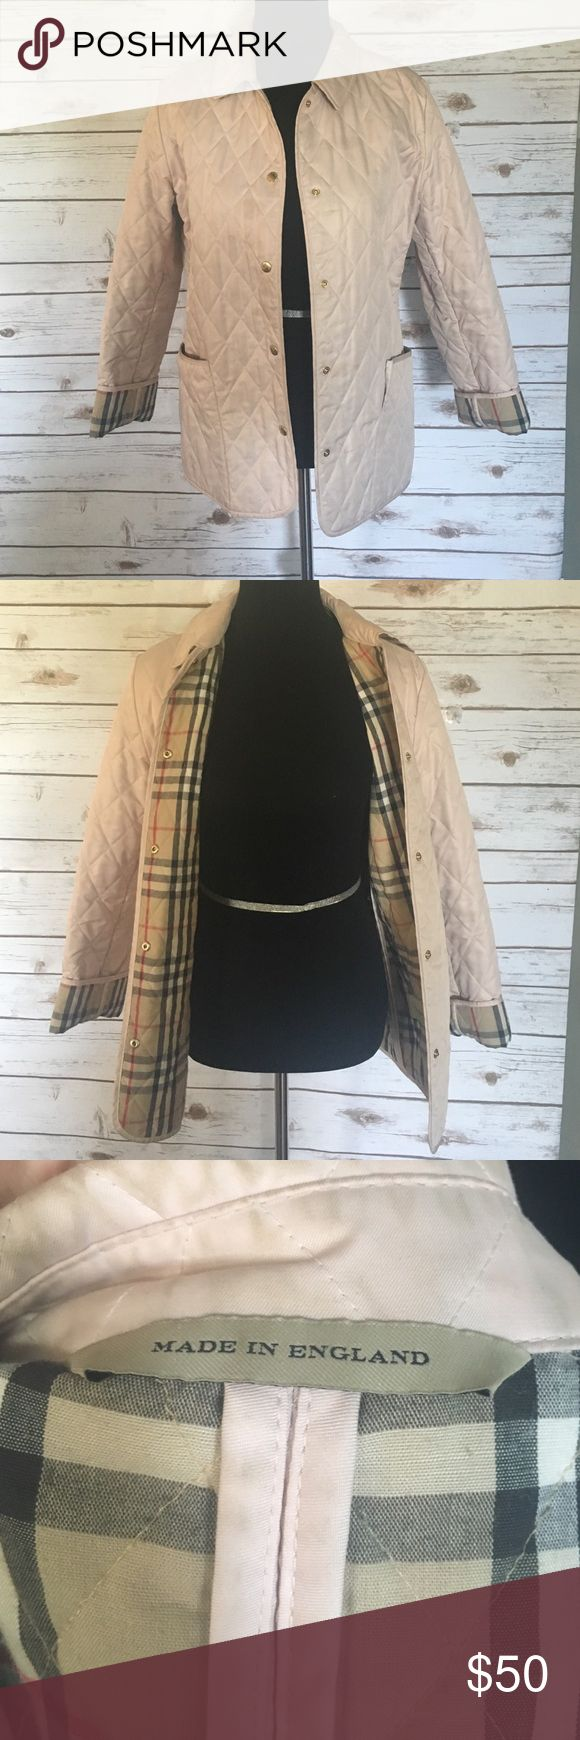 Burberry jacket Authentic Burberry jacket in light pink Burberry Jackets & Coats